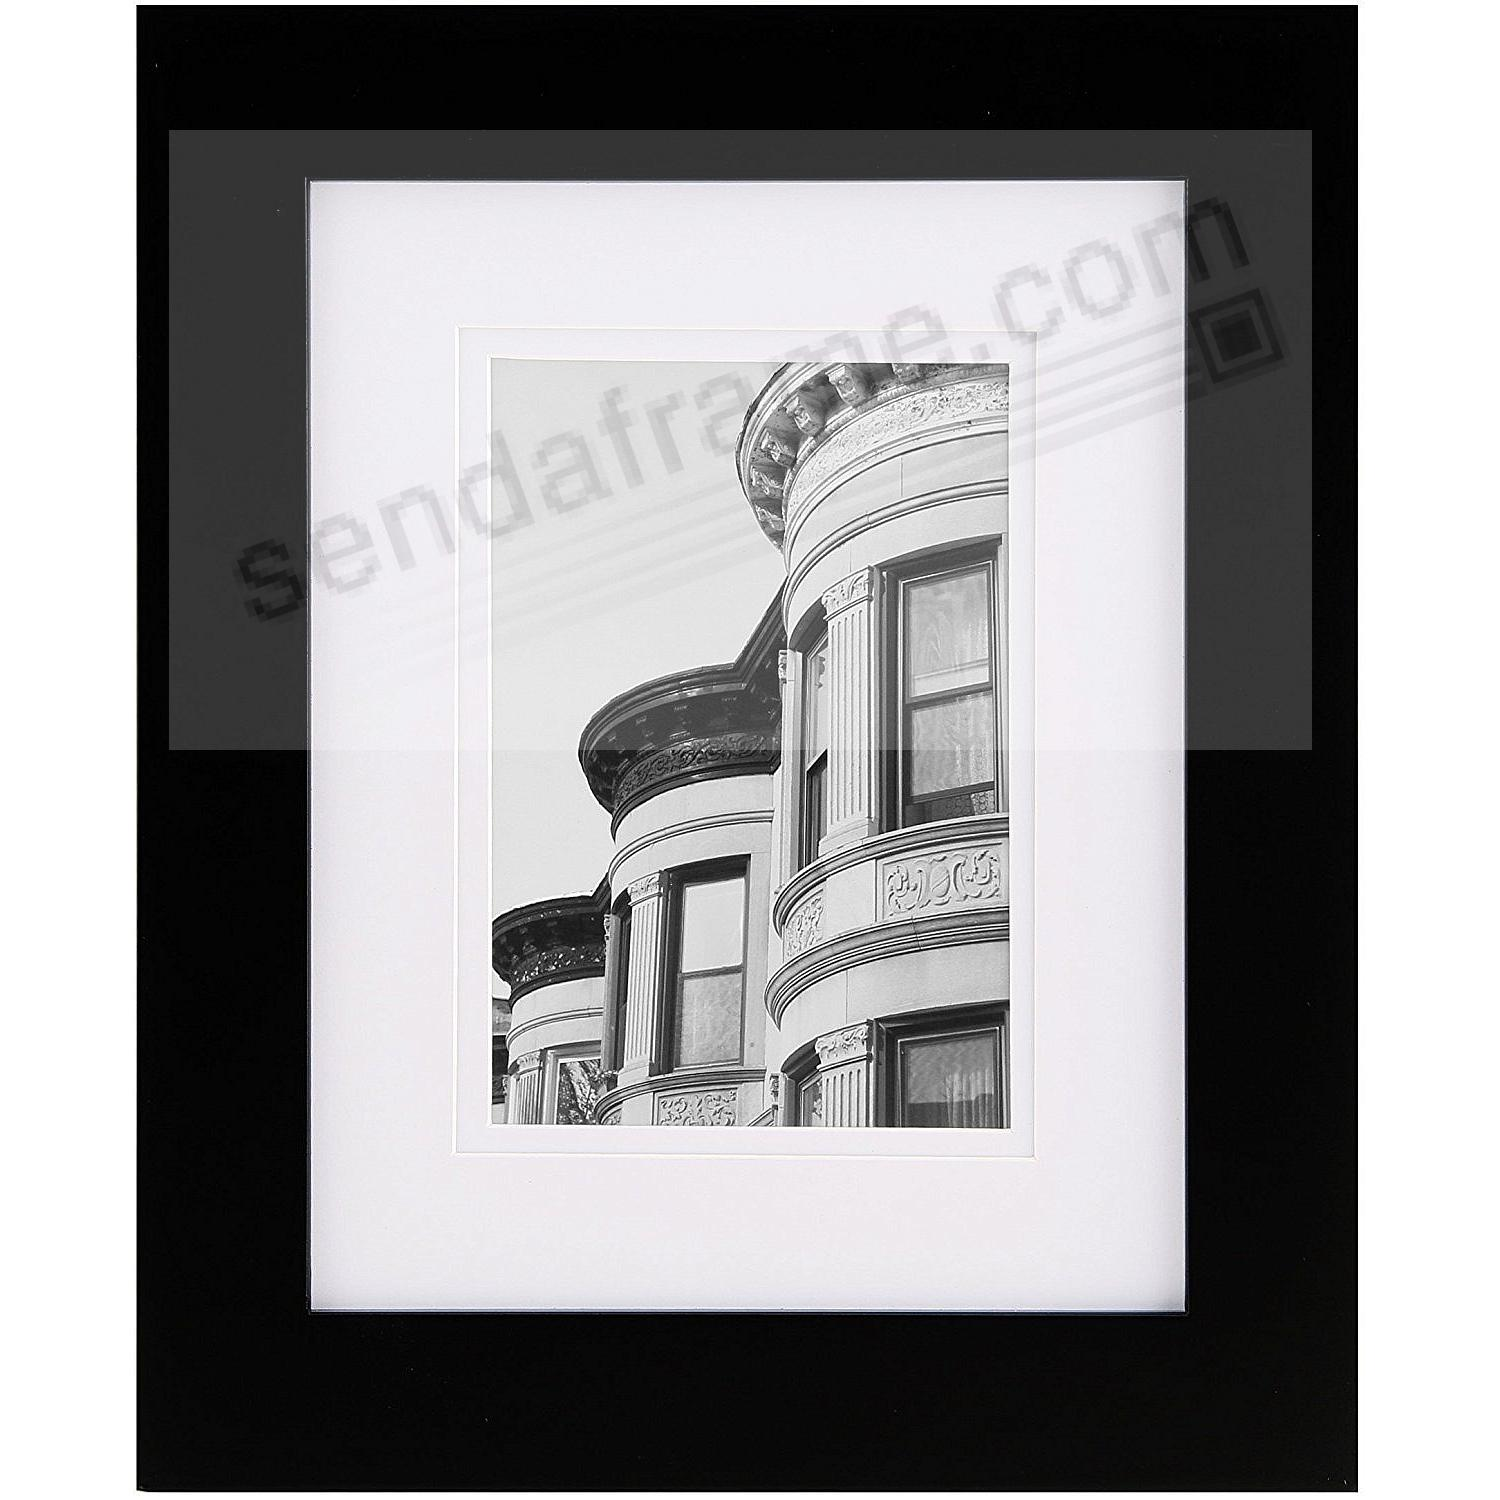 Black Wood Wall Frame Matted 8x10/5x7 by Gallery Solutions ...